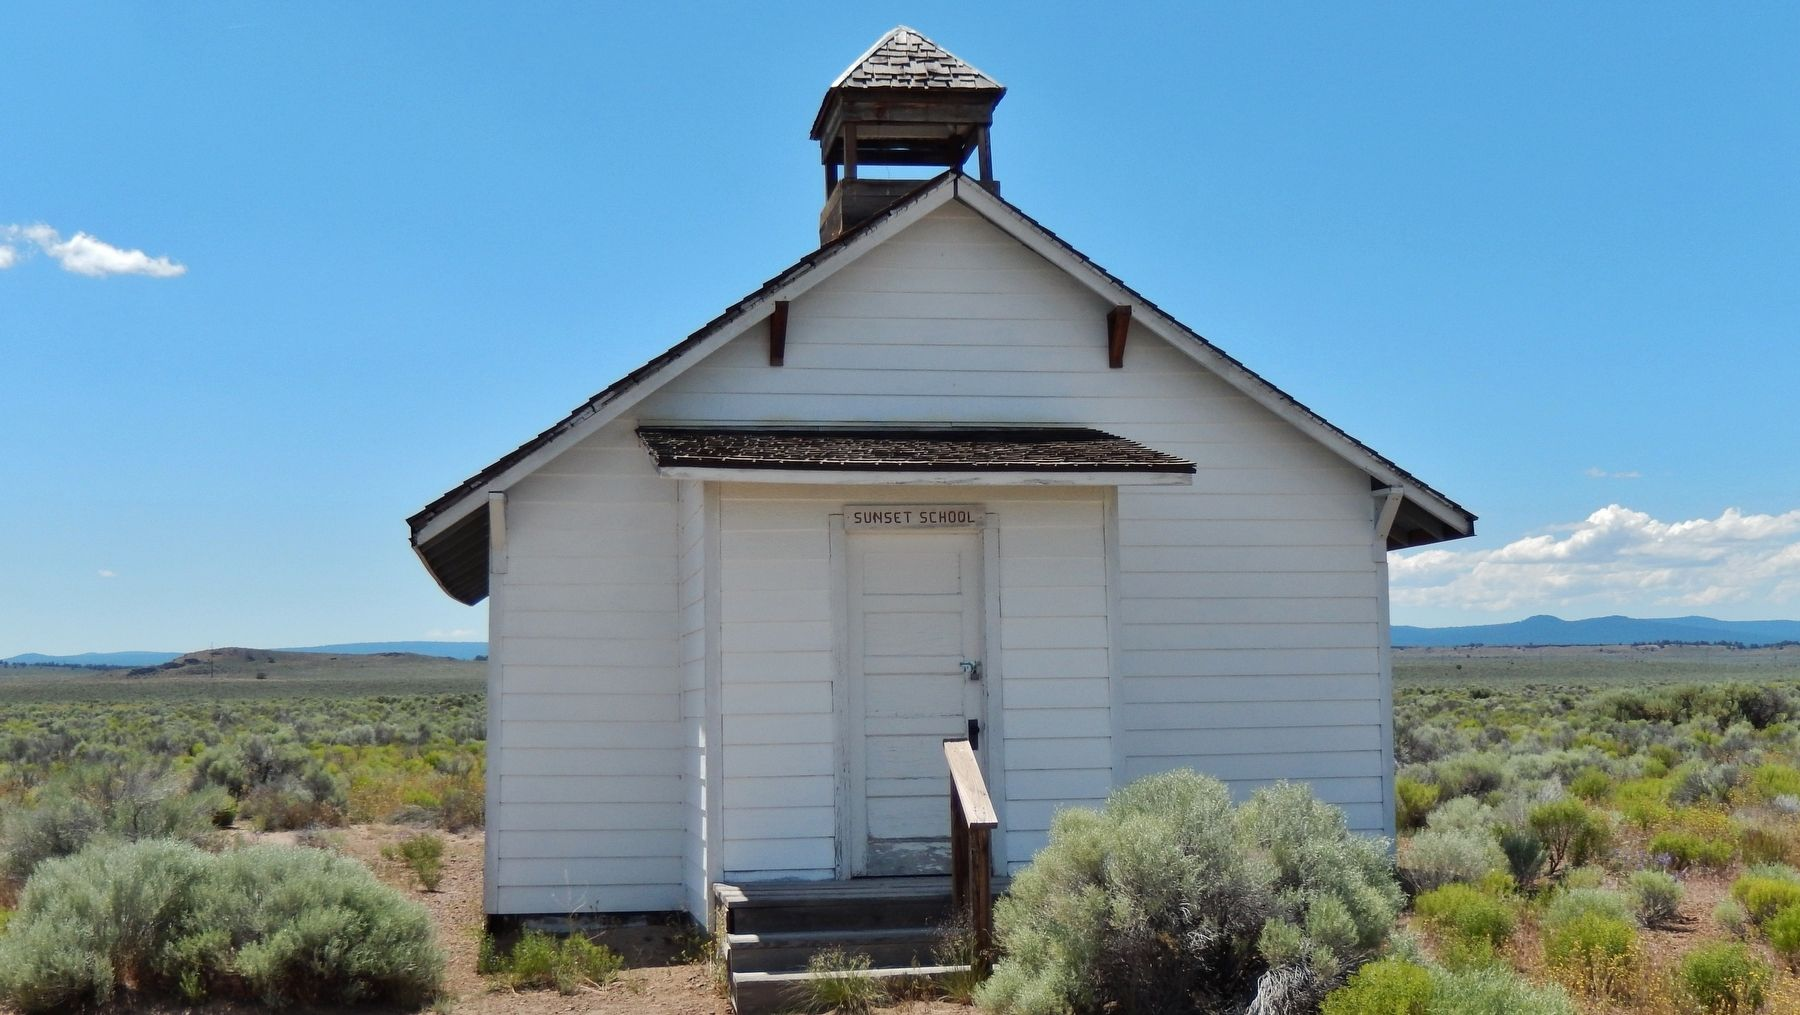 Sunset School Building (<i>historic exhibit near marker</i>) image. Click for full size.